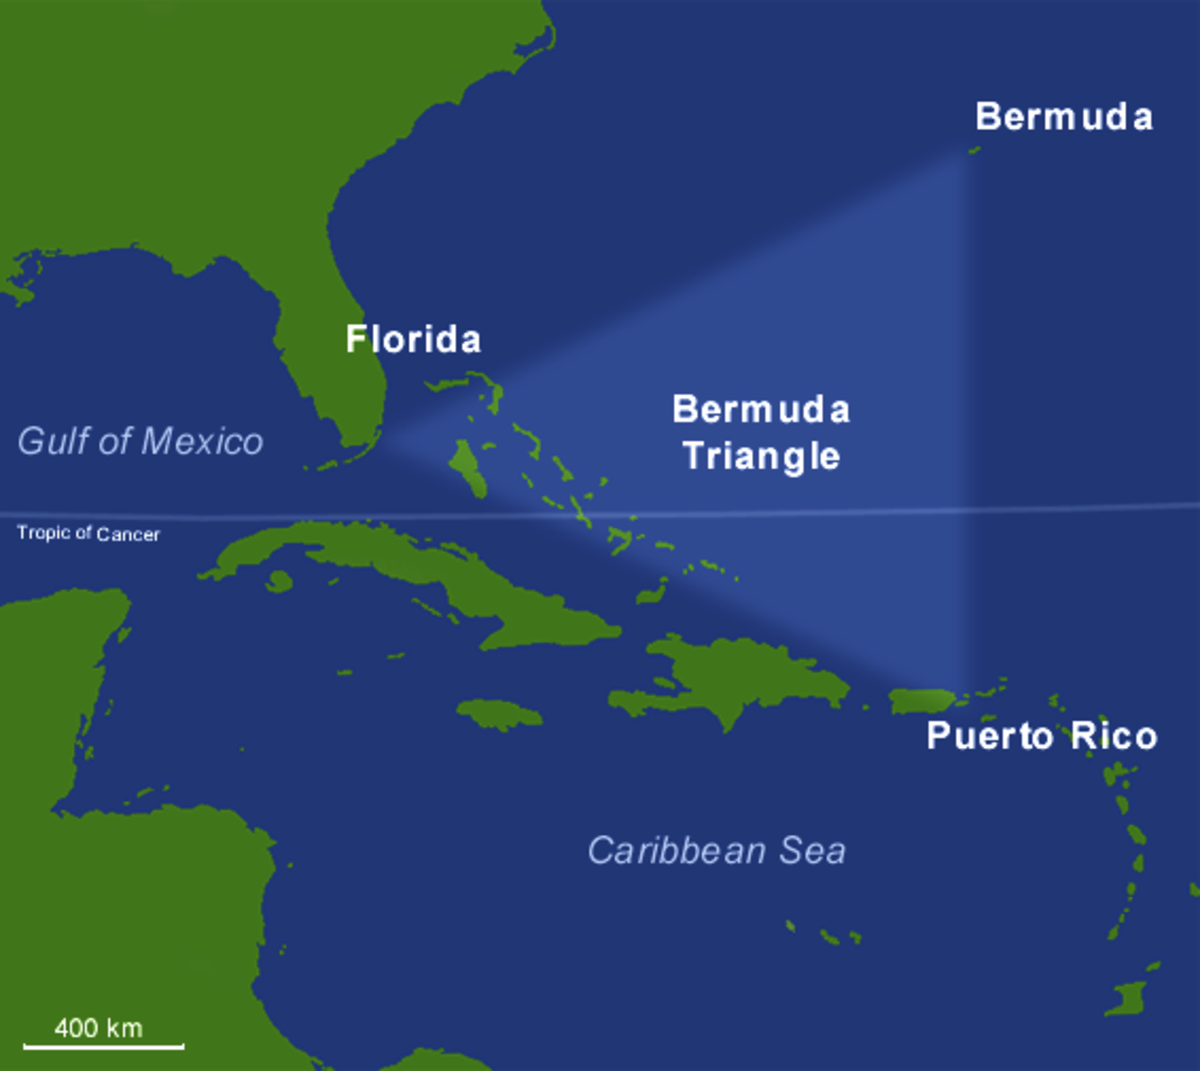 The Bermuda Triangle is located from Florida to Bermuda to Puerto Rico.